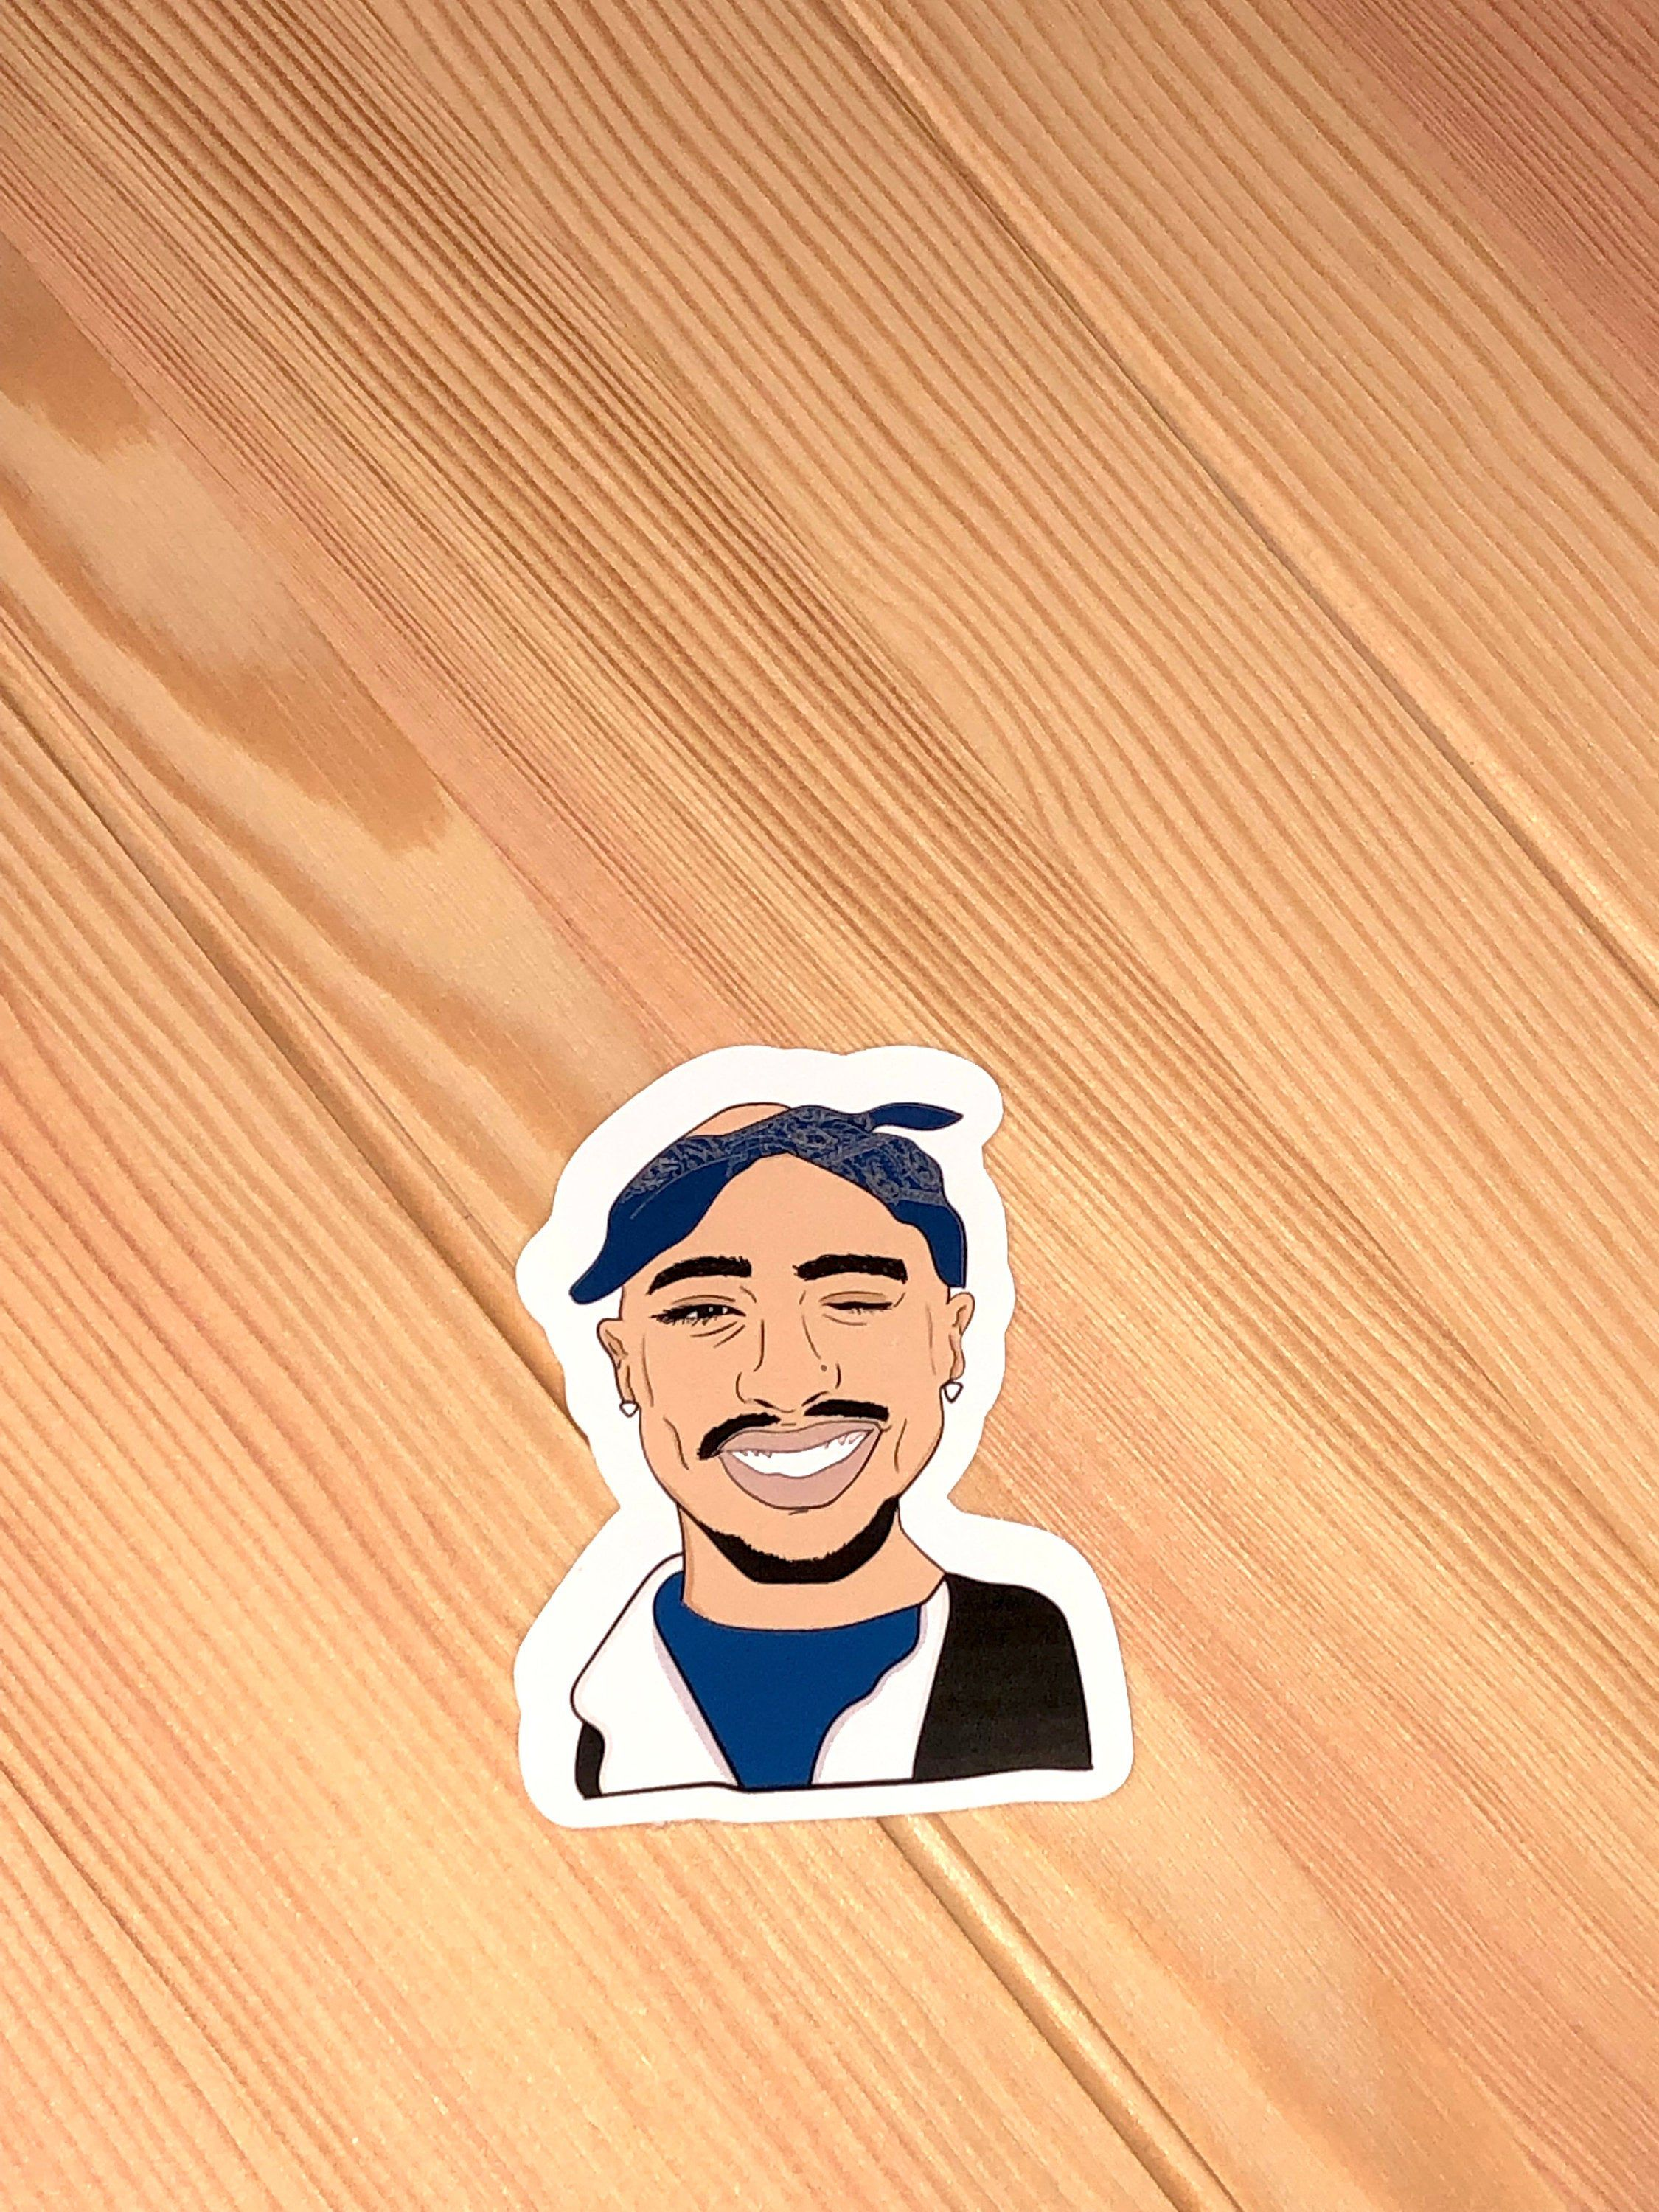 Excited To Share The Latest Addition To My Etsy Shop Tupac Sticker 2pac Sticker Hiphop Sticker Papergo Cute Stickers Iphone Stickers Gloss Sticker Paper [ 3000 x 2250 Pixel ]